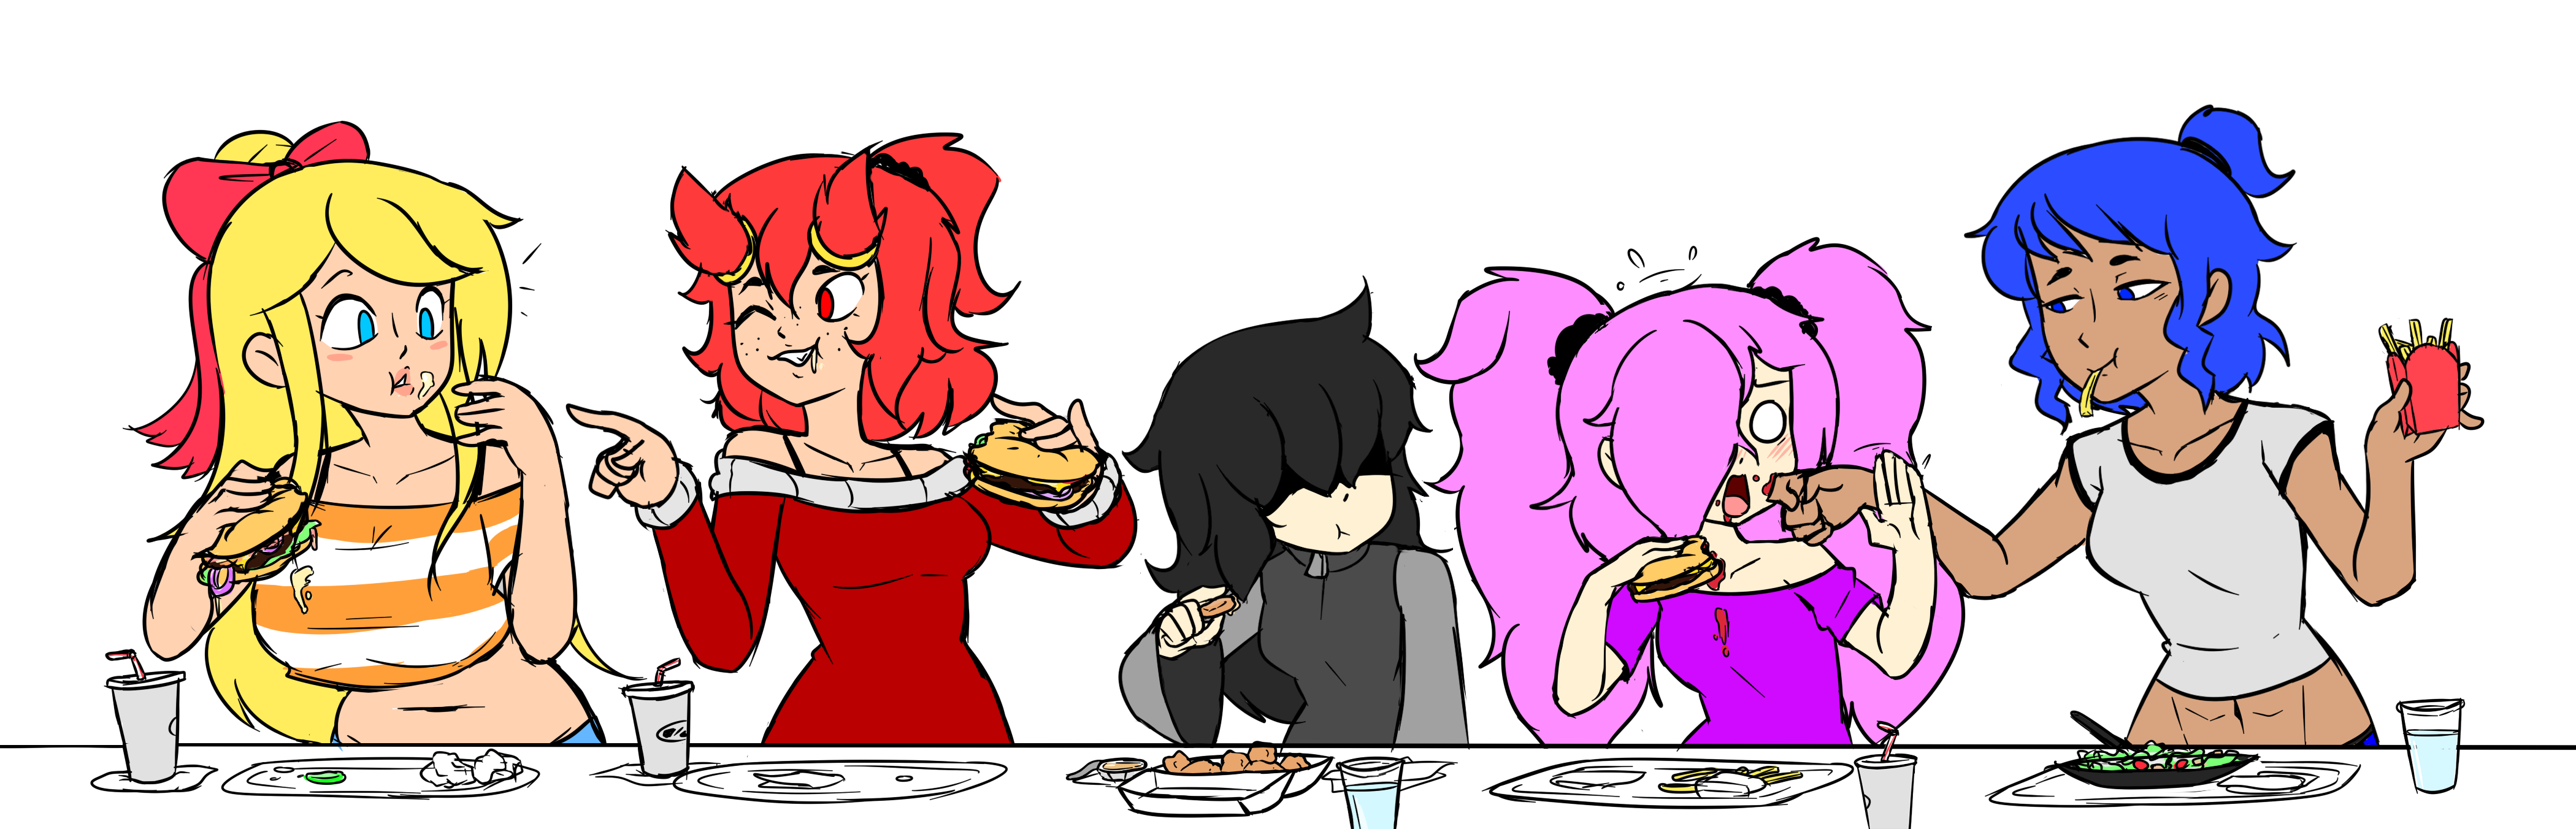 The Girls Eatin' Together